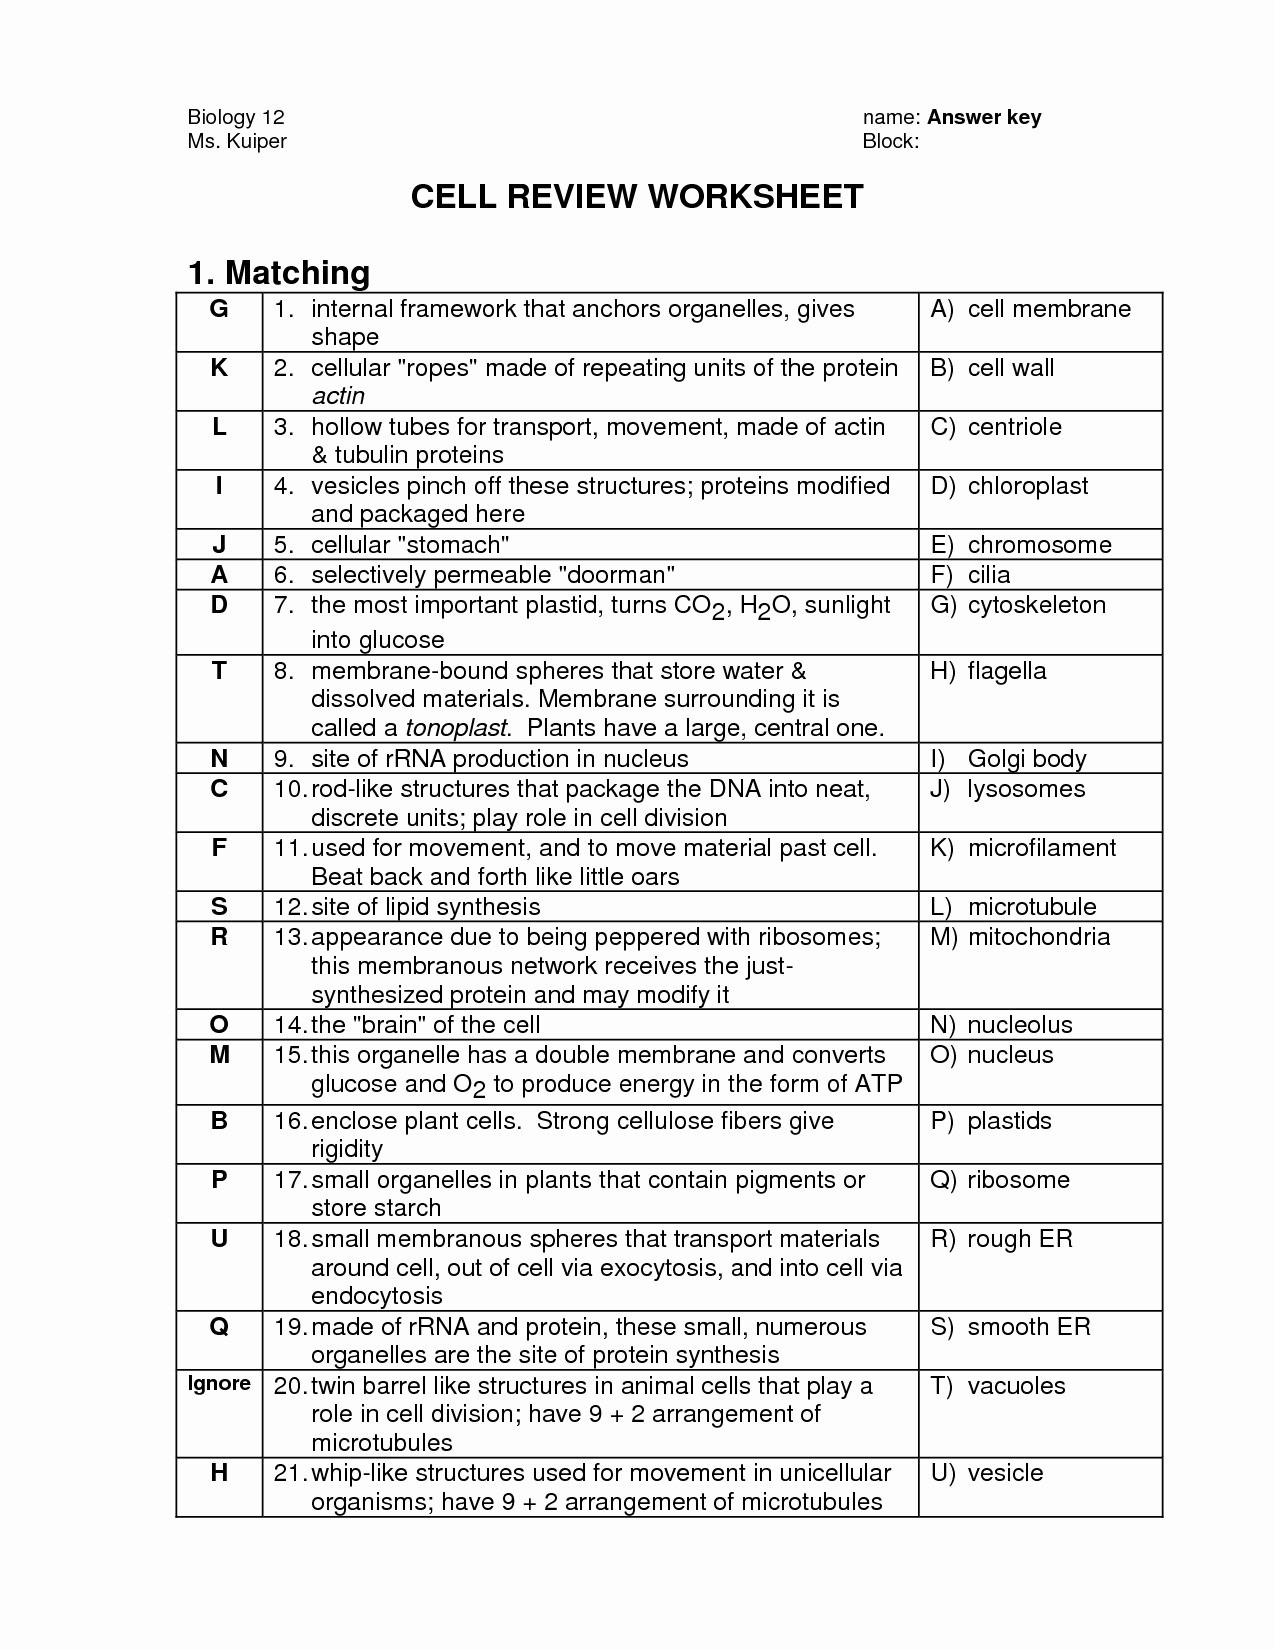 Membrane Structure and Function Worksheet Luxury 16 Best Of the 12 Cell Review Worksheet Answers